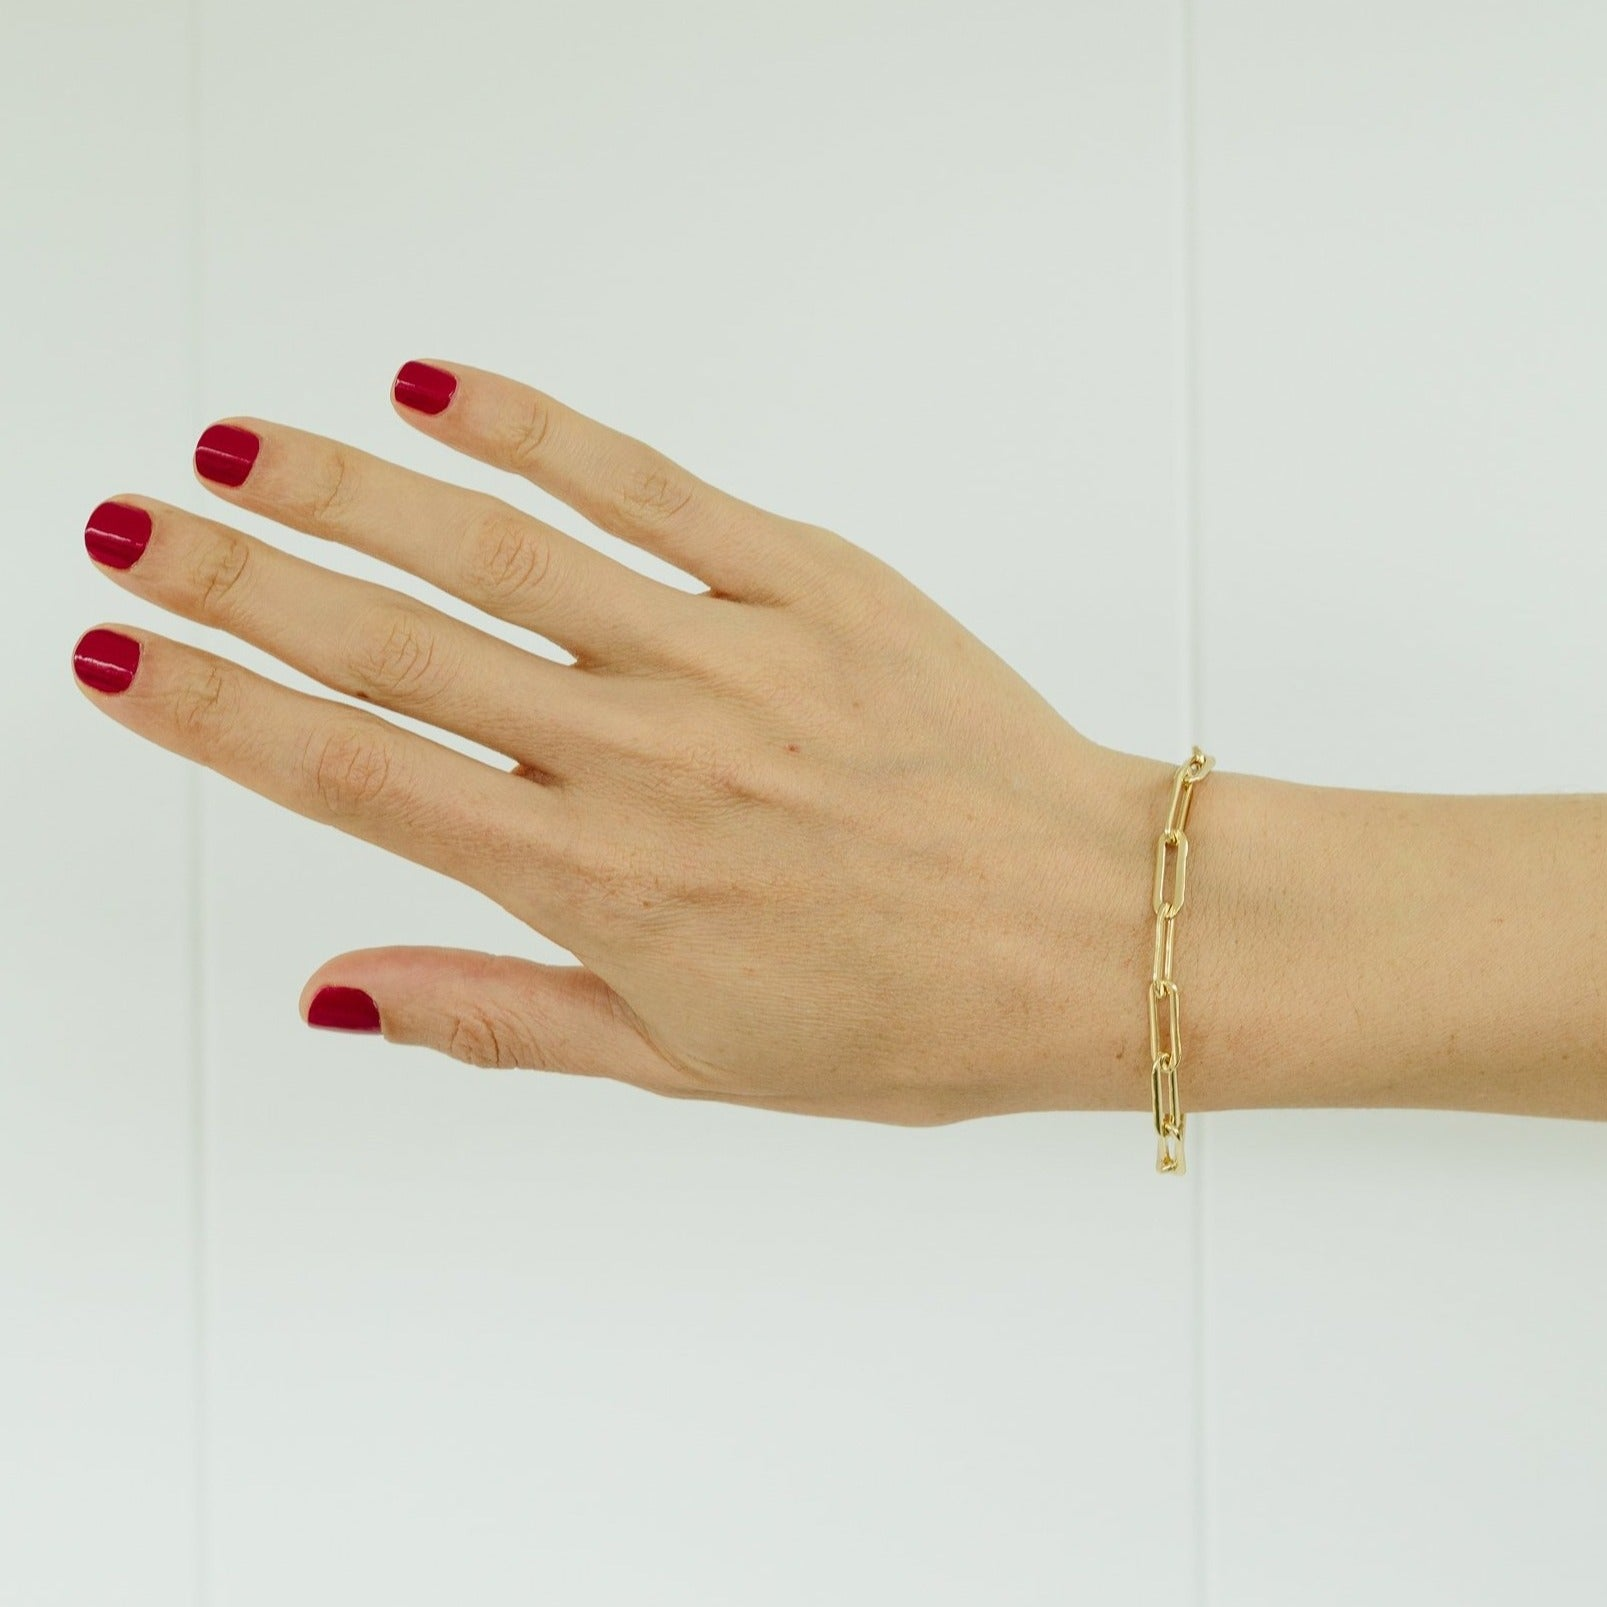 Rectangular Link Chain Bracelet With Tusk Clasp - Gabriela Artigas